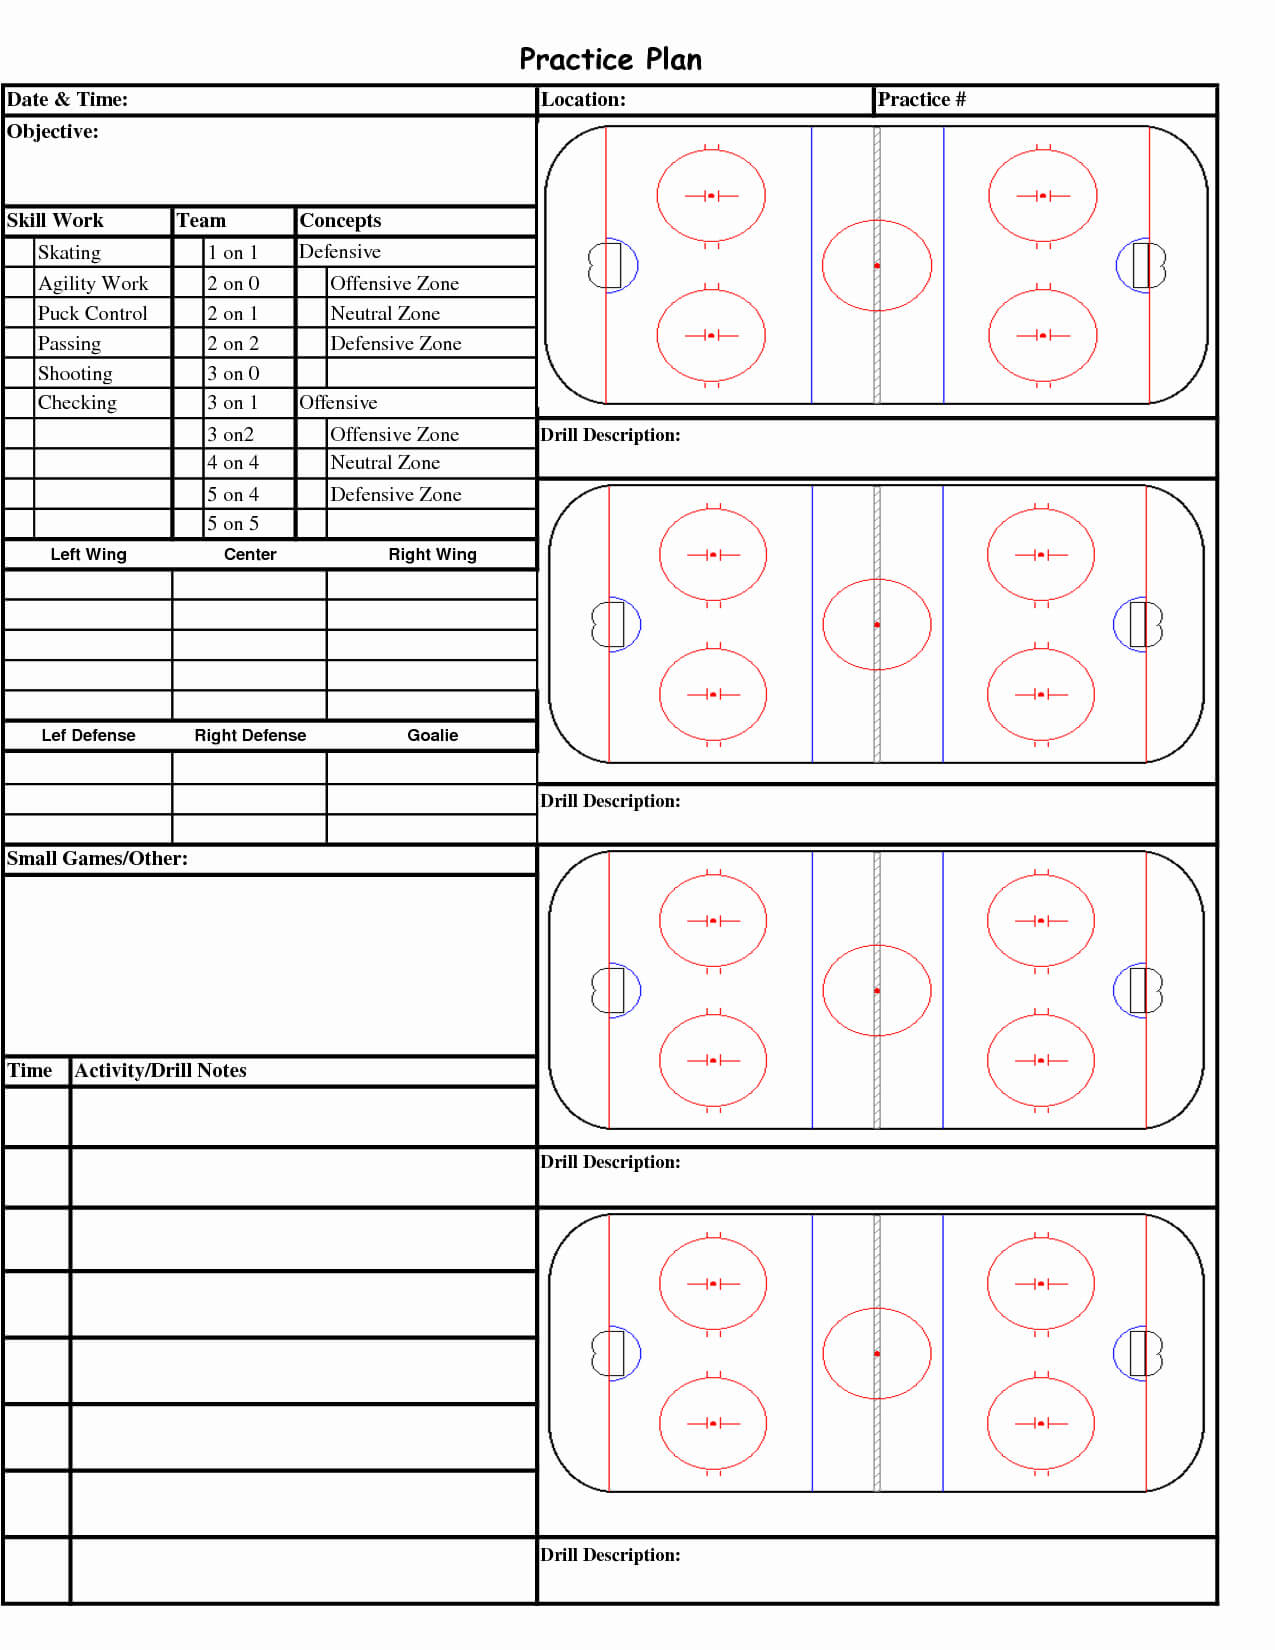 Hockey Practice Plan Template | Template Modern Design Inside Blank Hockey Practice Plan Template